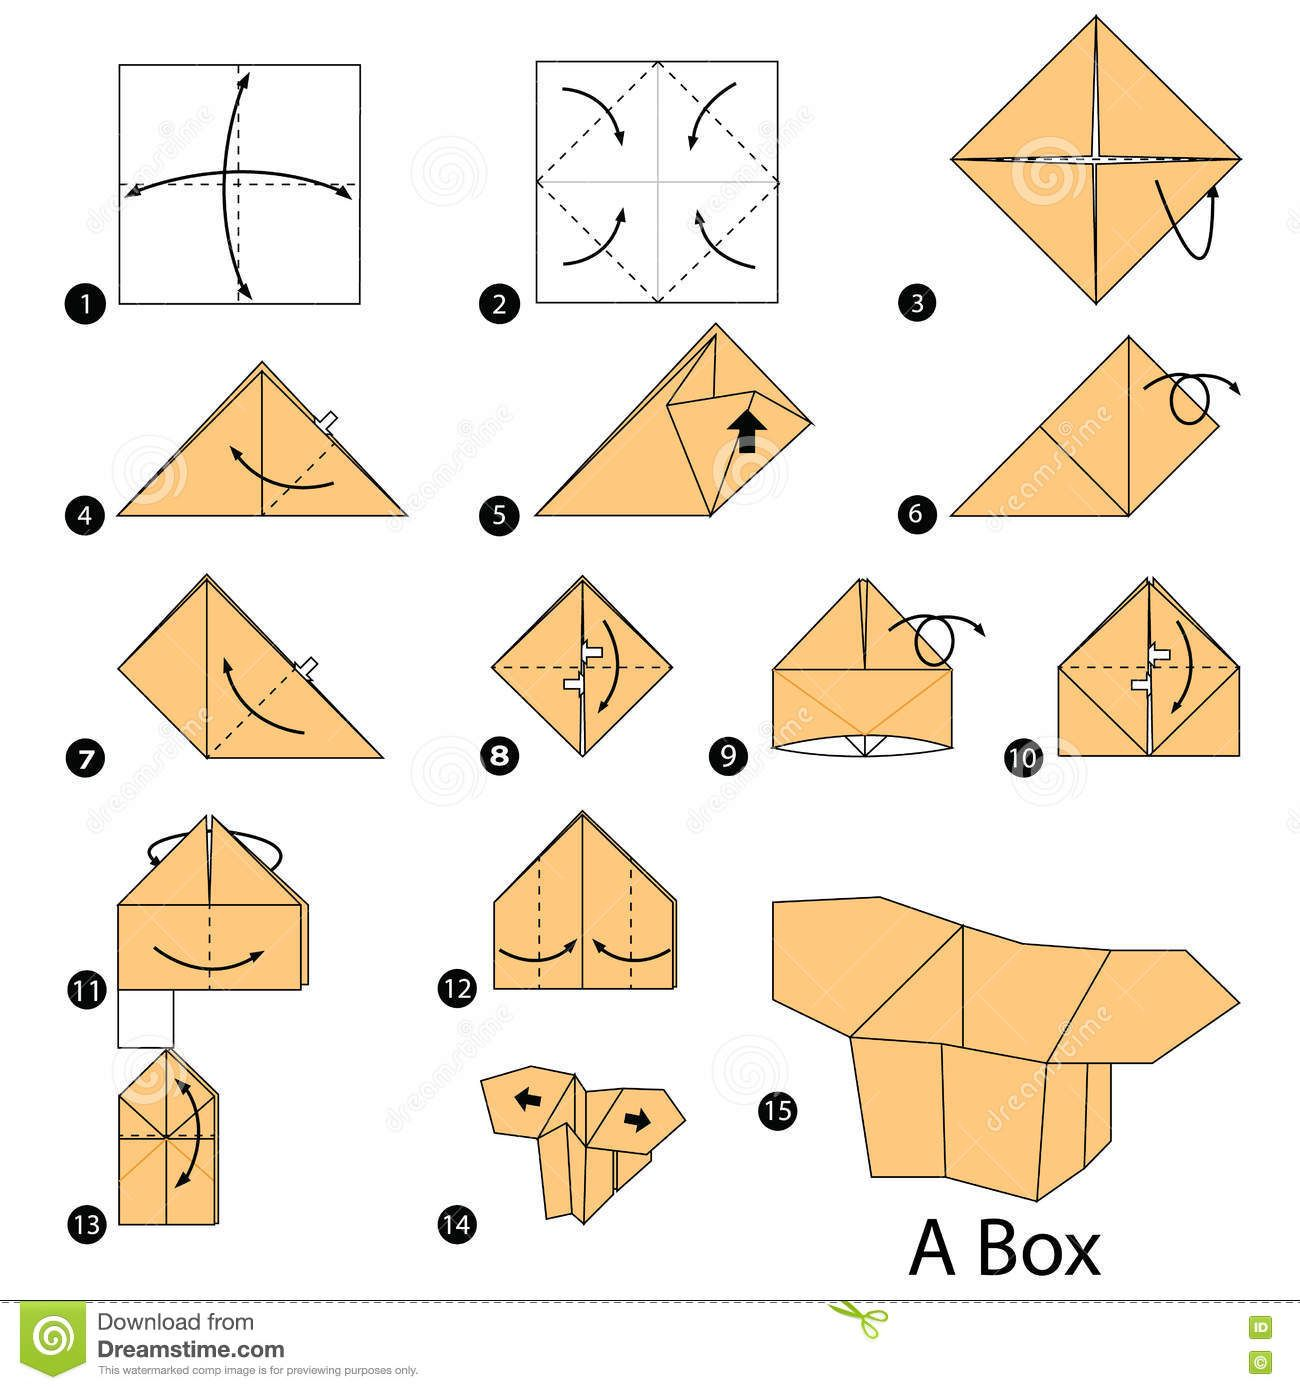 step-by-step-instructions-how-to-make-origami-a-box-stock ... - photo#47